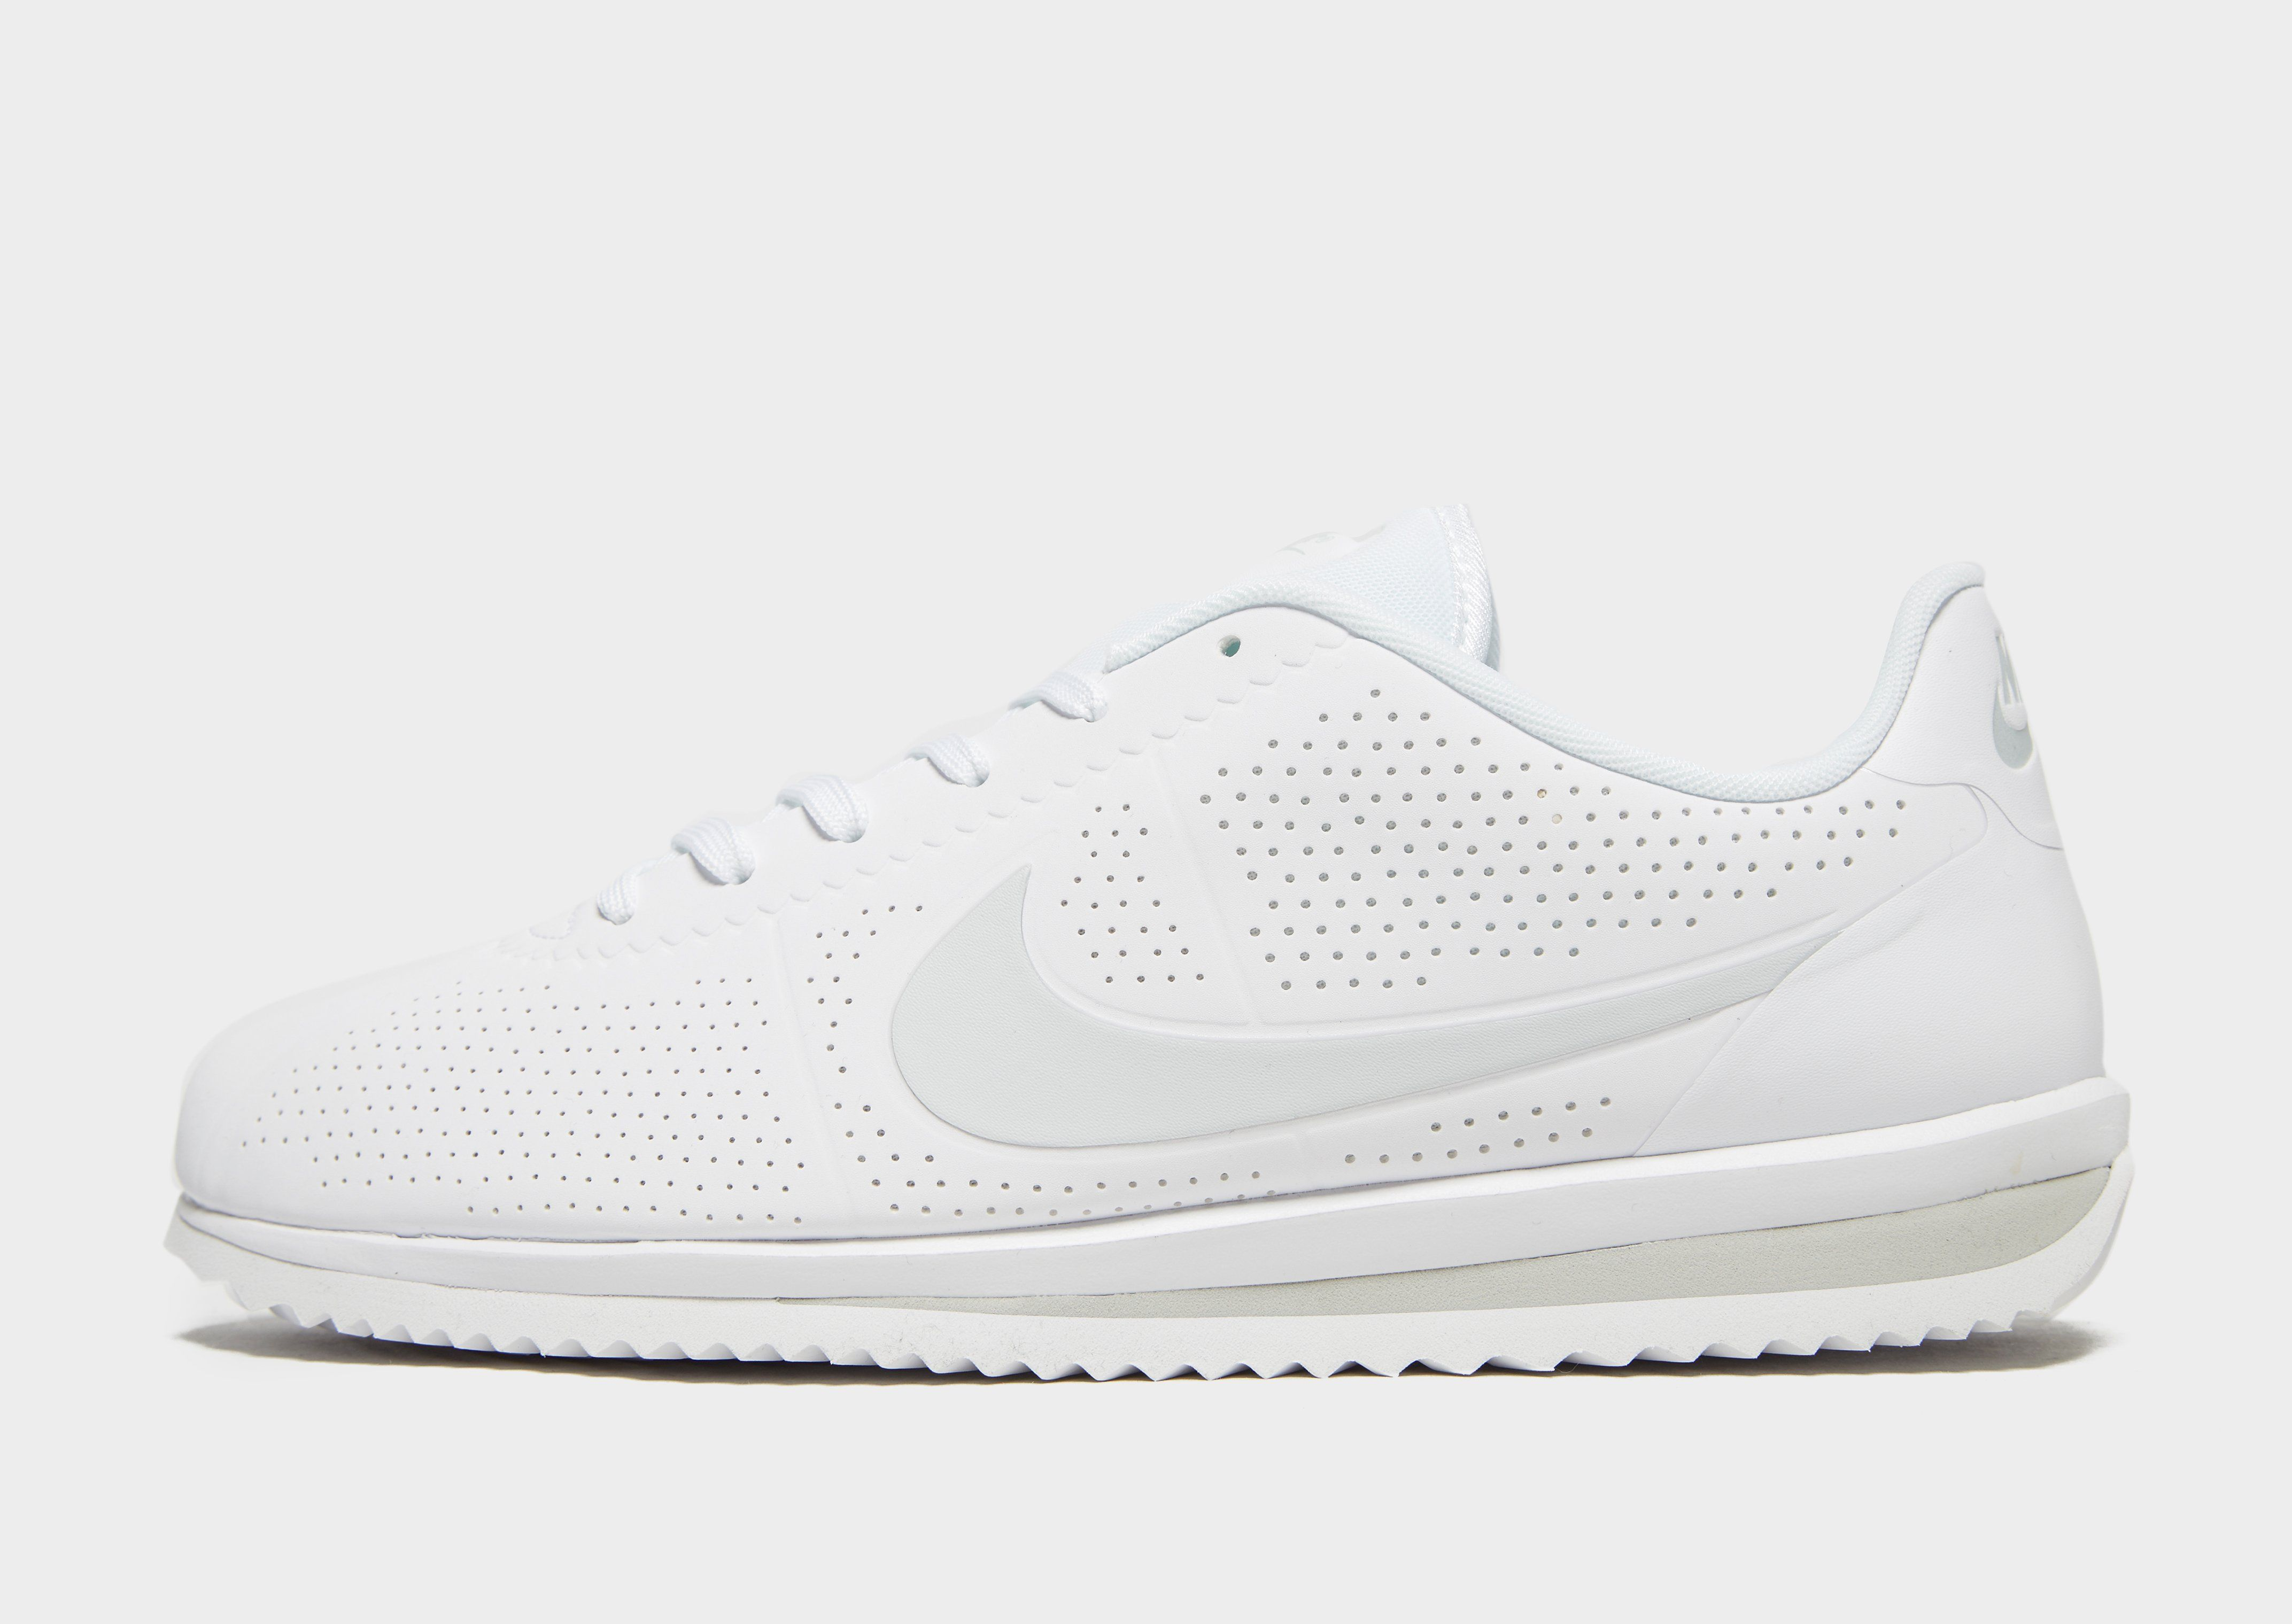 check out 5dd0e d8de7 Nike Cortez Ultra Moire | JD Sports